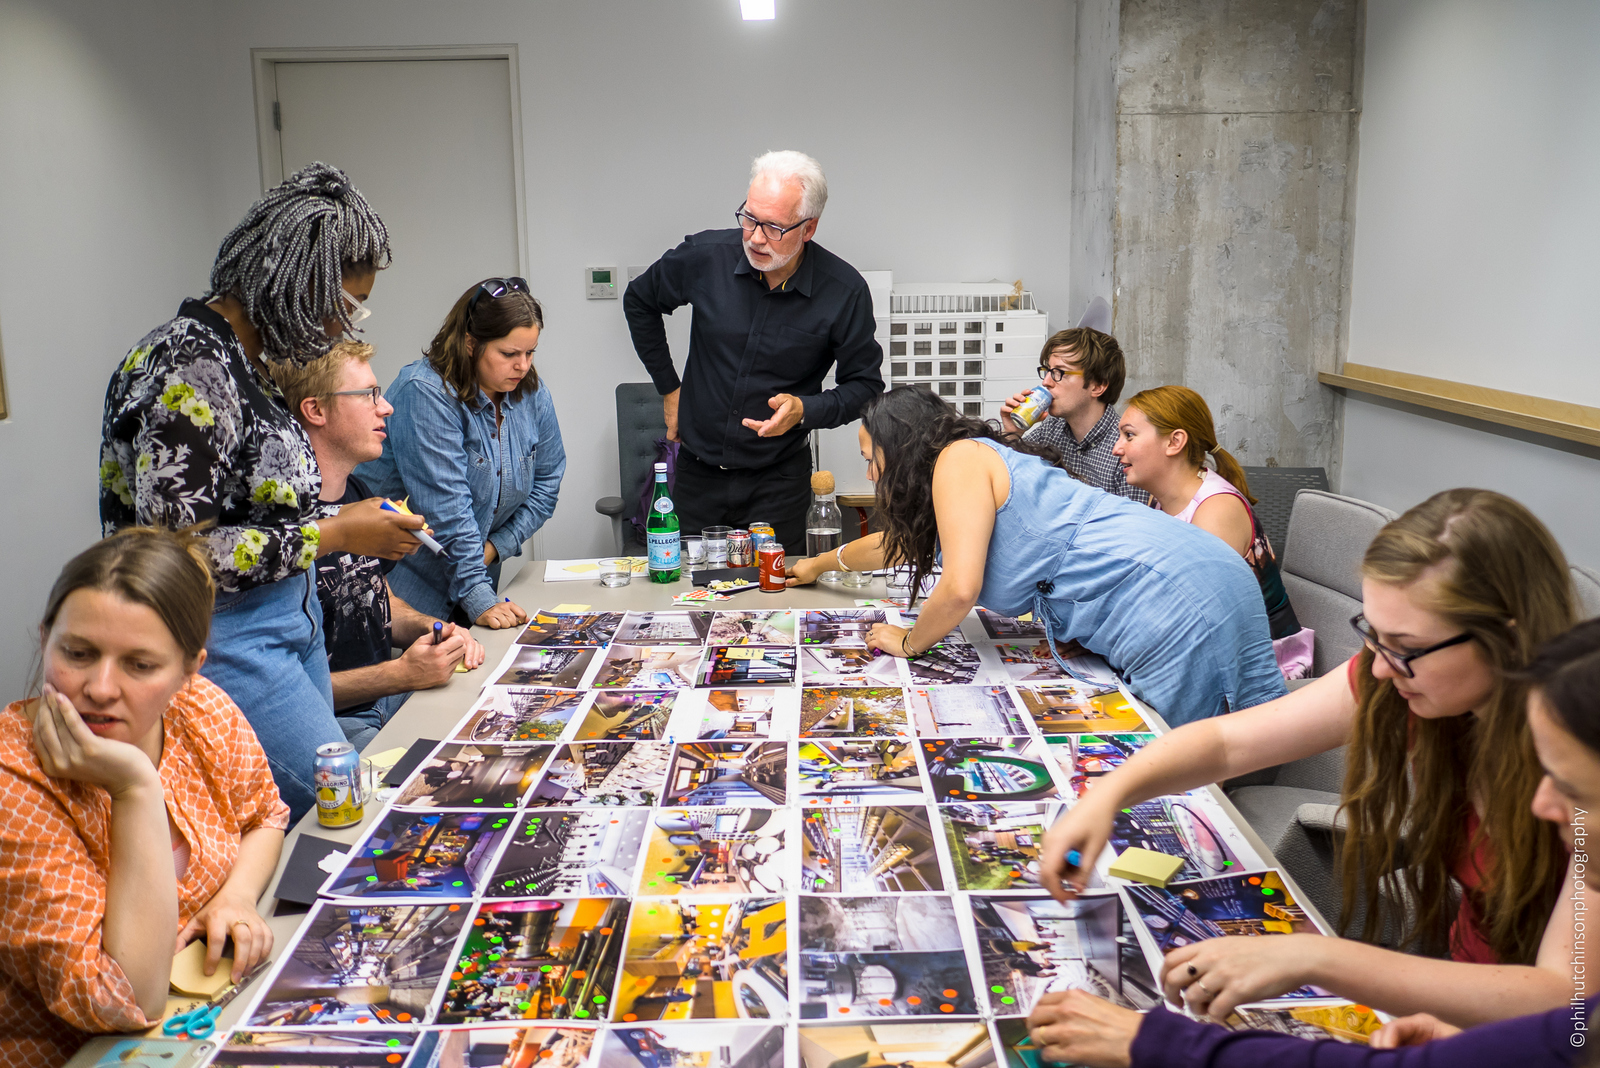 - We believe that architecture is most successful when it is able to connect people and spaces, our role is to build those connections.